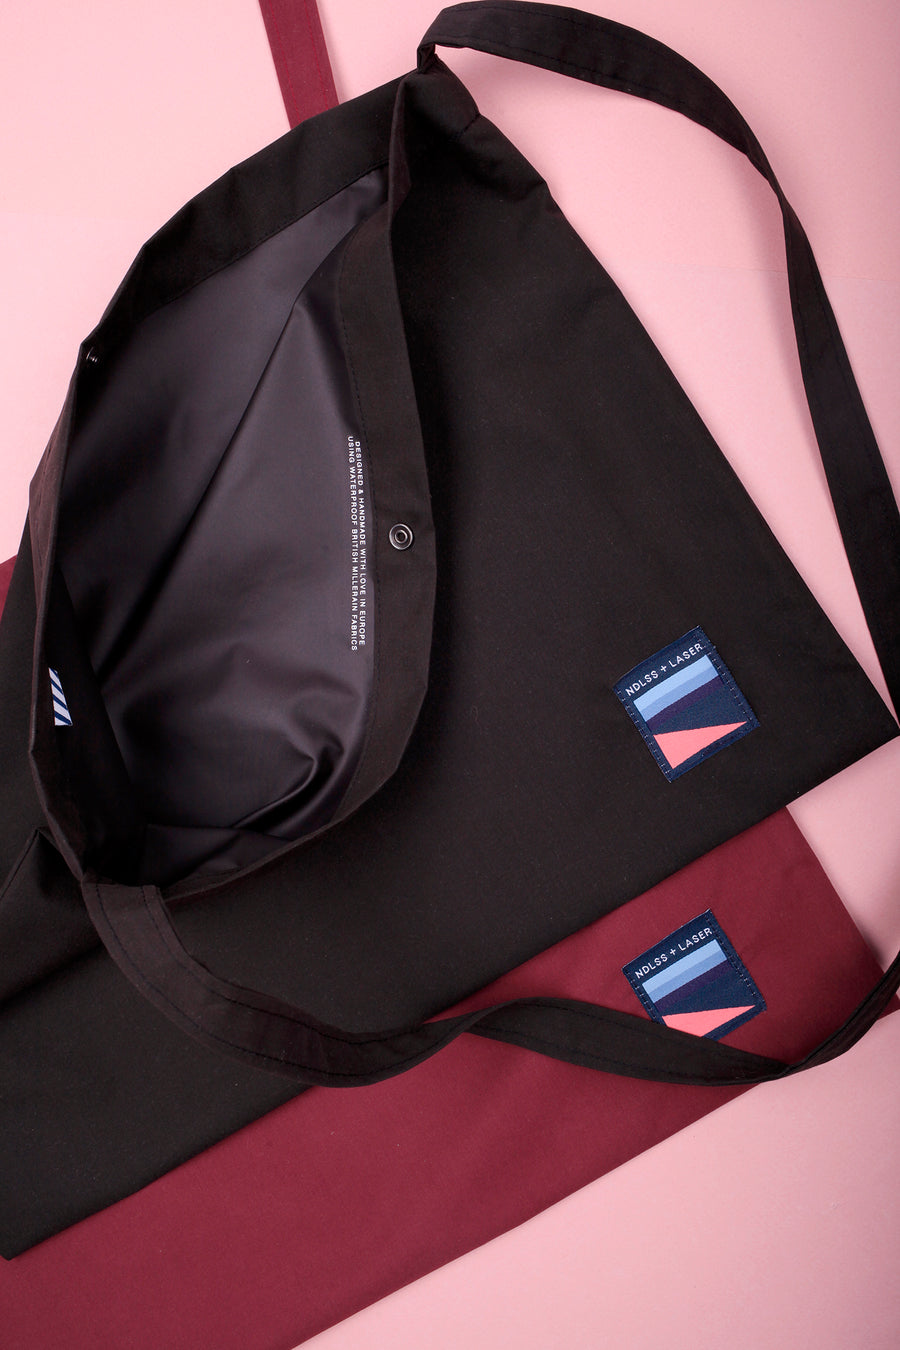 NDLSS+LASER WATERPROOF MUSETTE BLACK